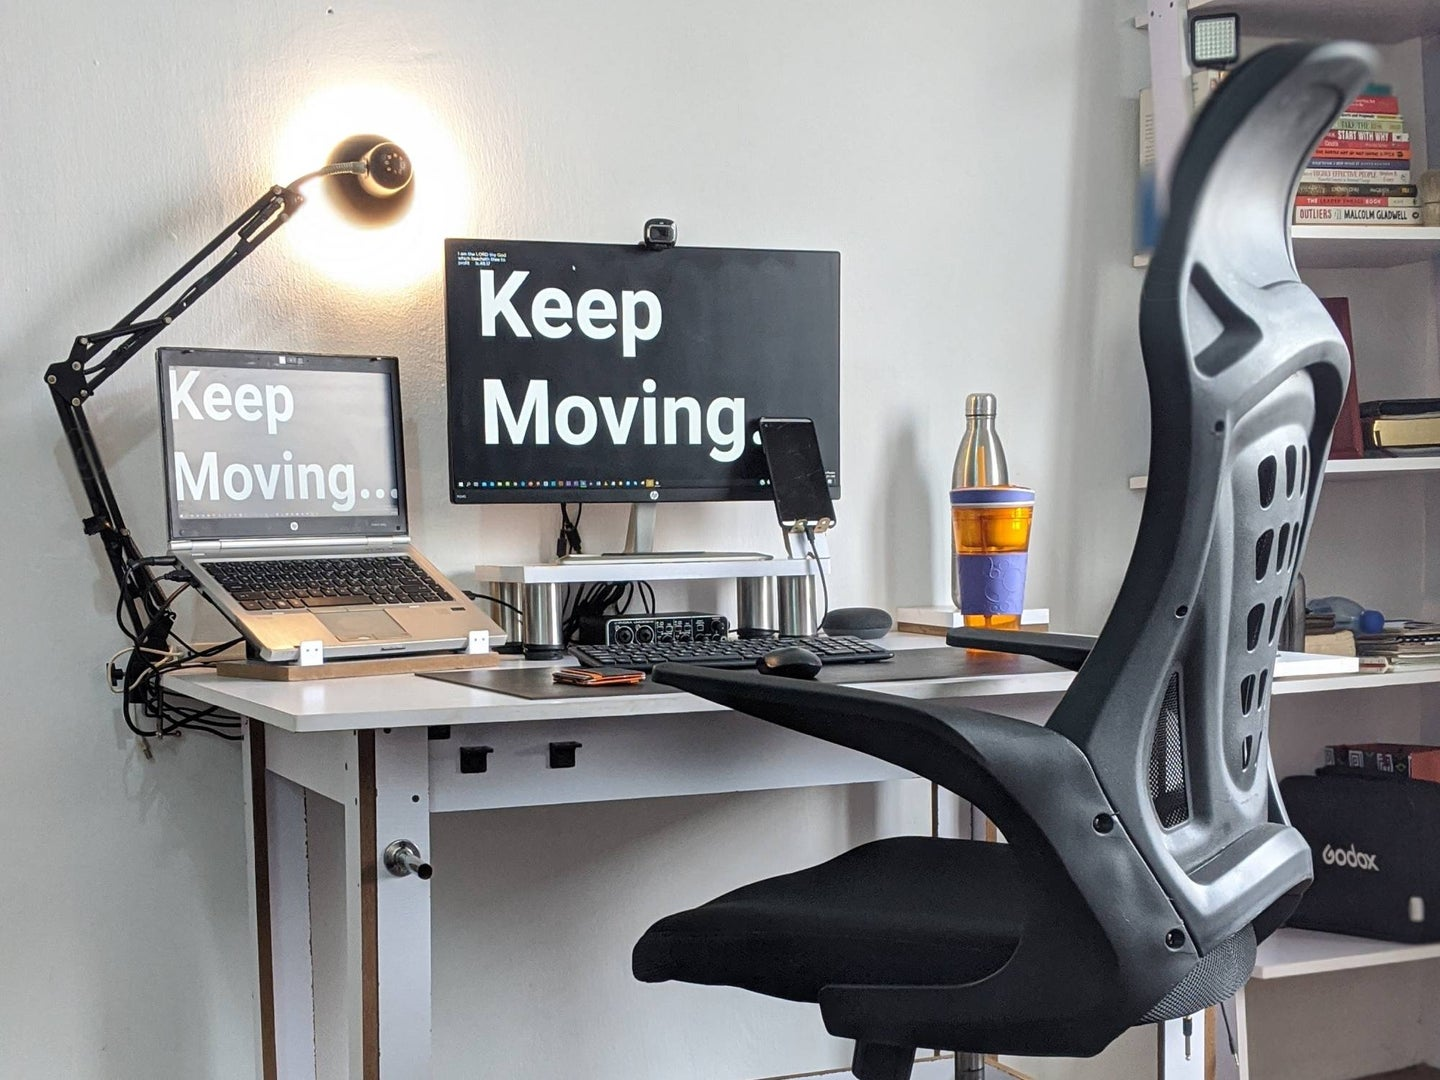 Work space at home with ergonomic chair.